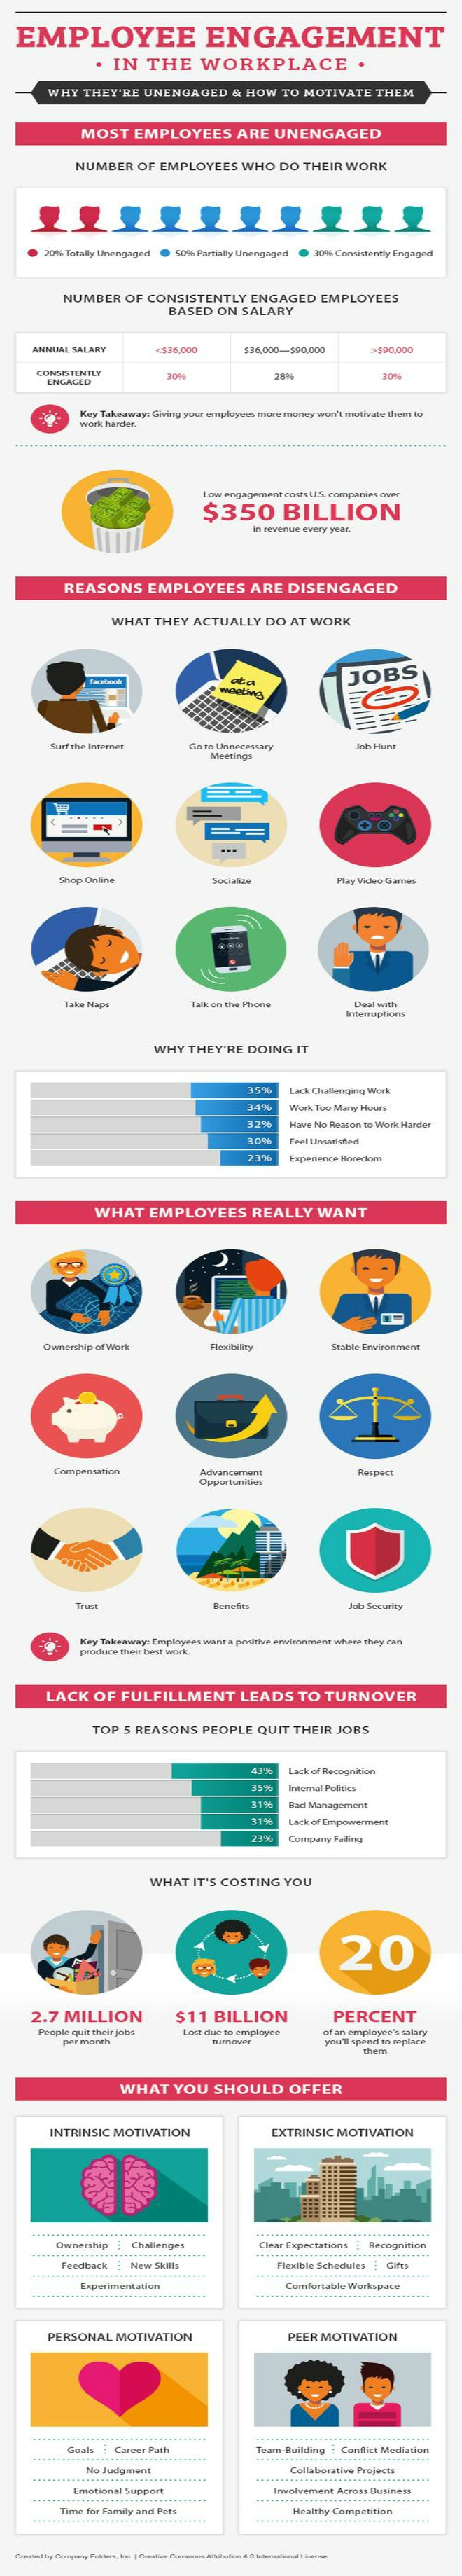 [Employee engagement infographic cr]